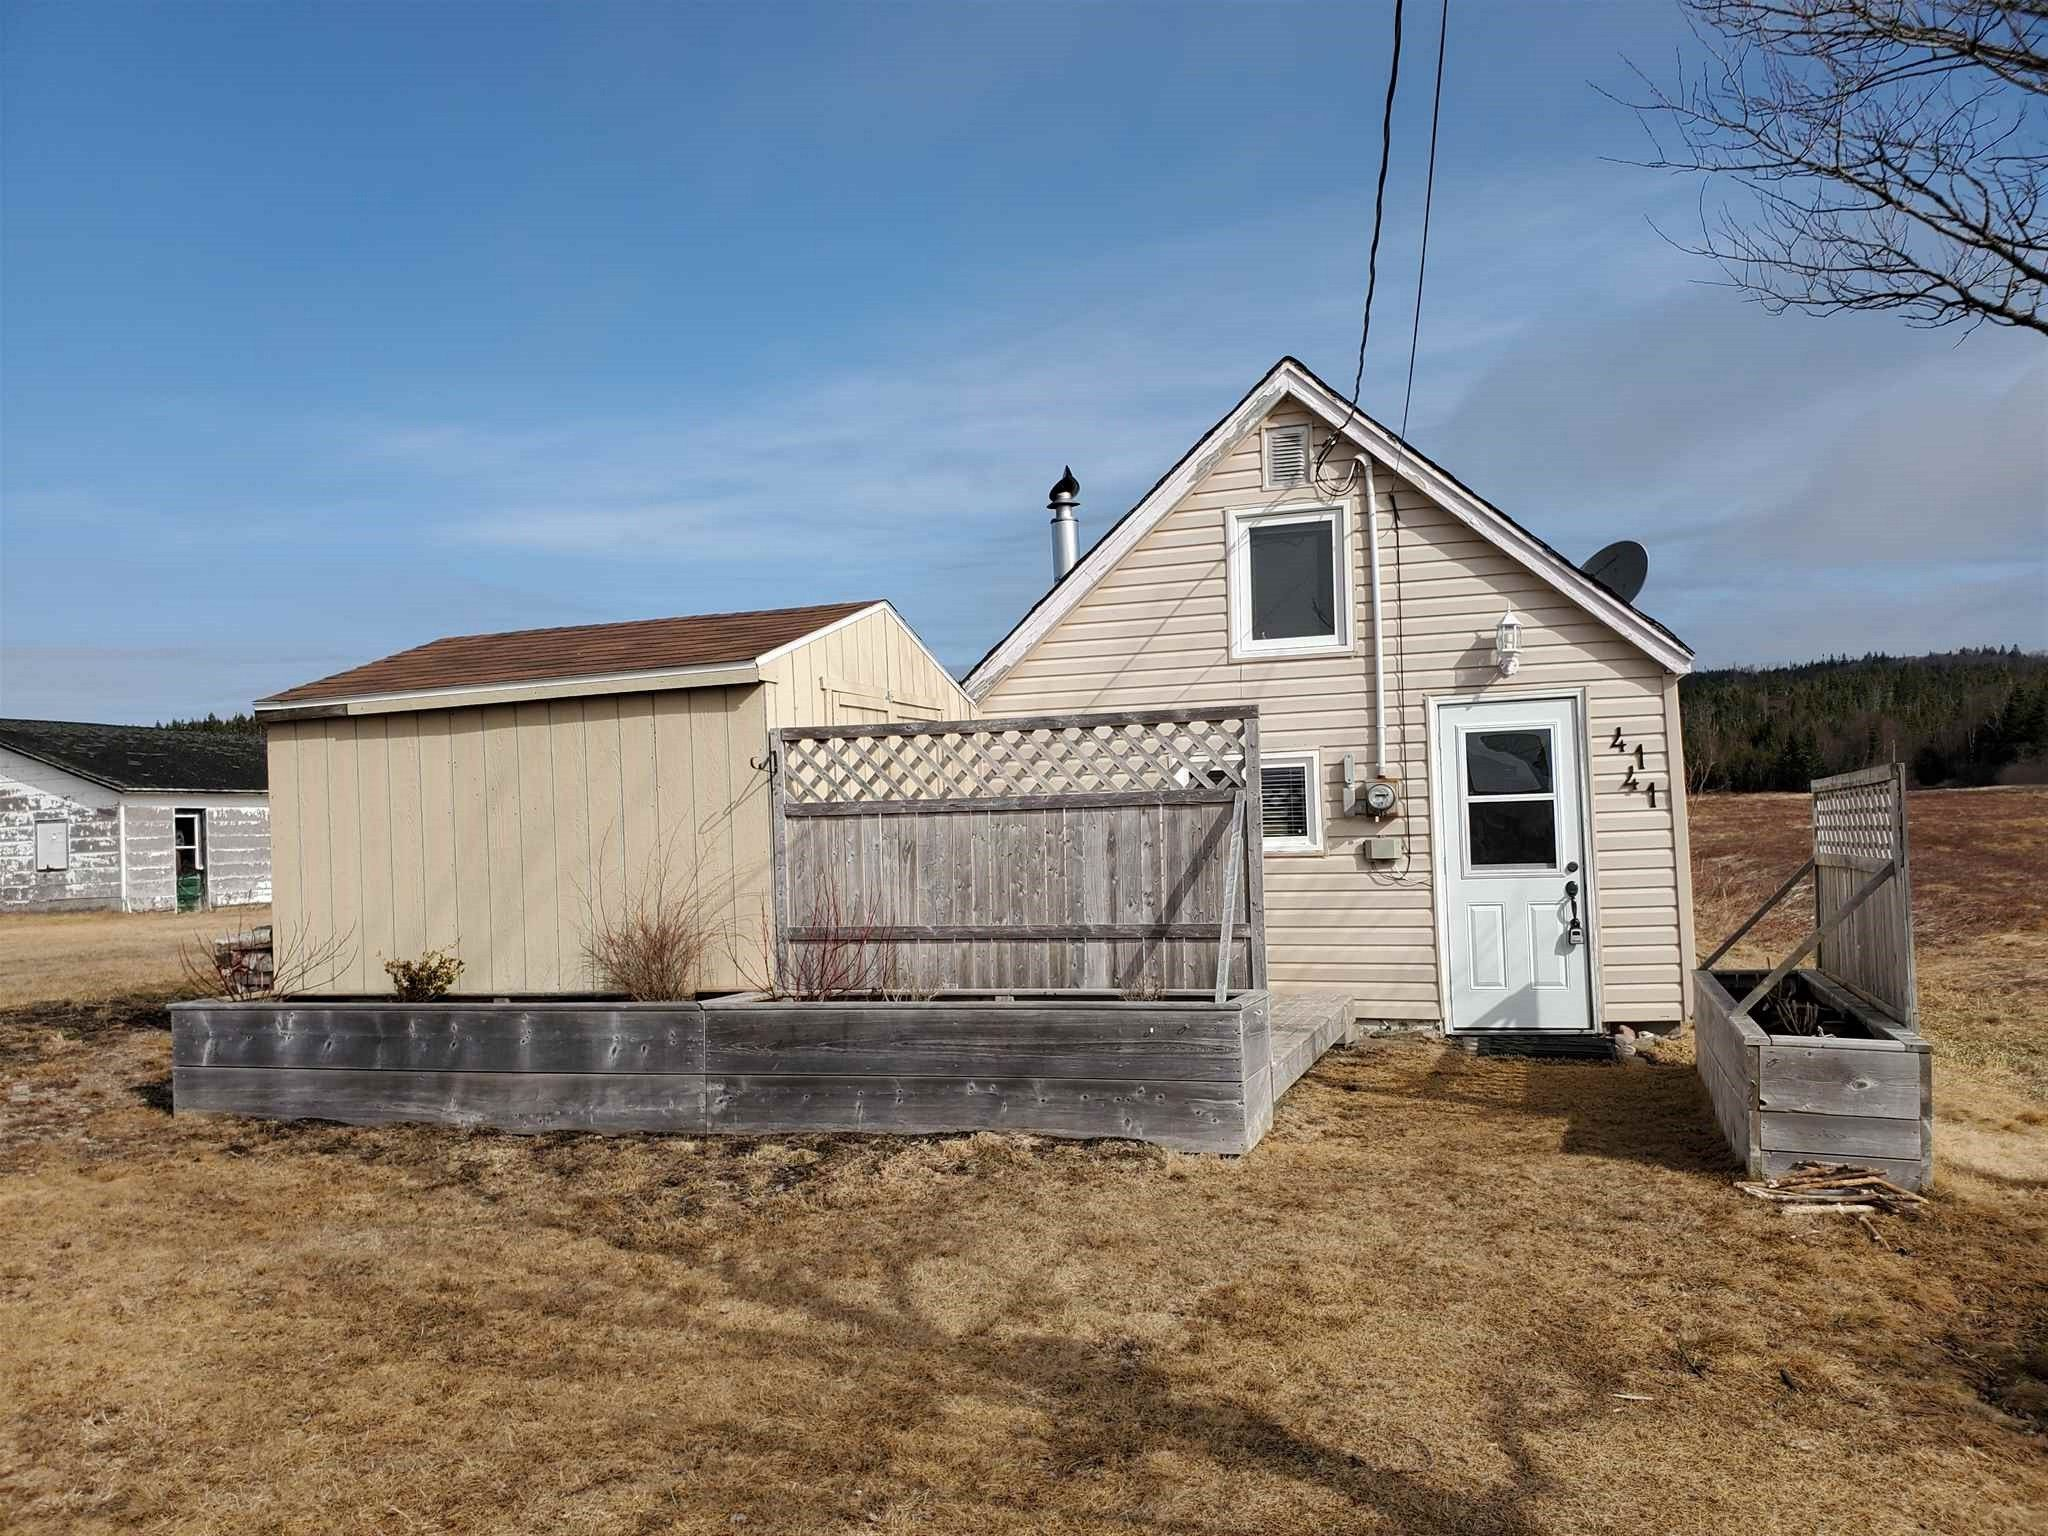 Main Photo: 4141 Highway 209 in Advocate: 102S-South Of Hwy 104, Parrsboro and area Residential for sale (Northern Region)  : MLS®# 202109184